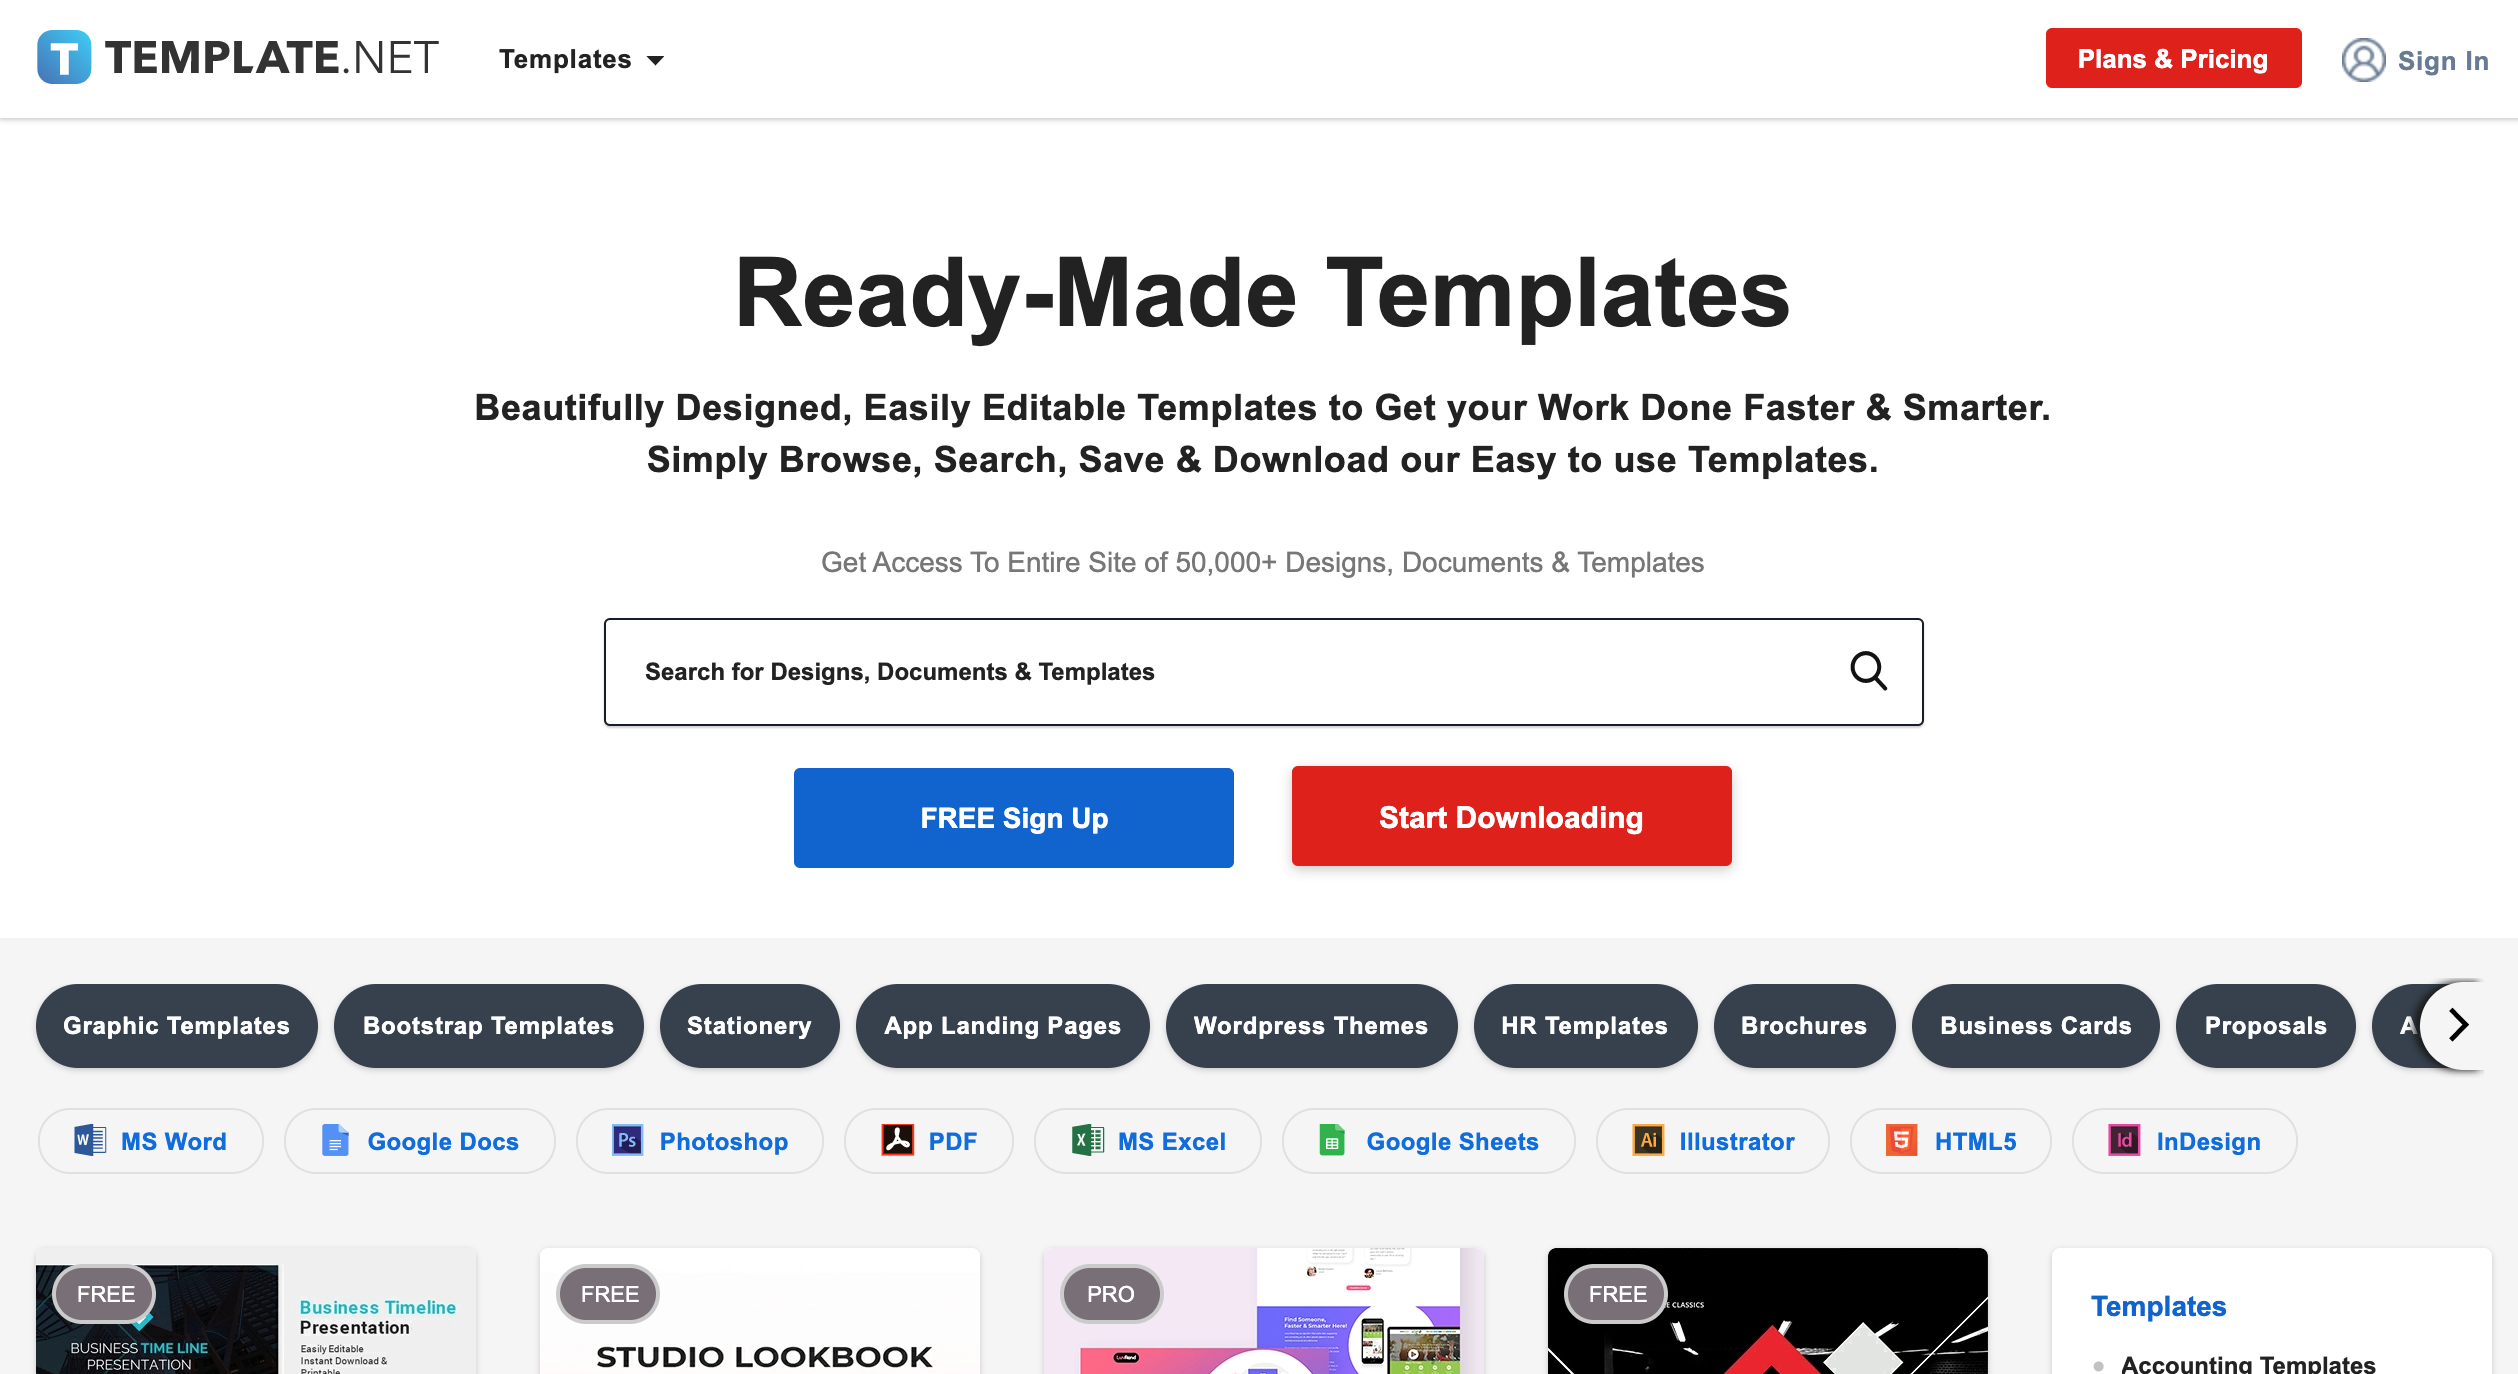 Template.net homepage image